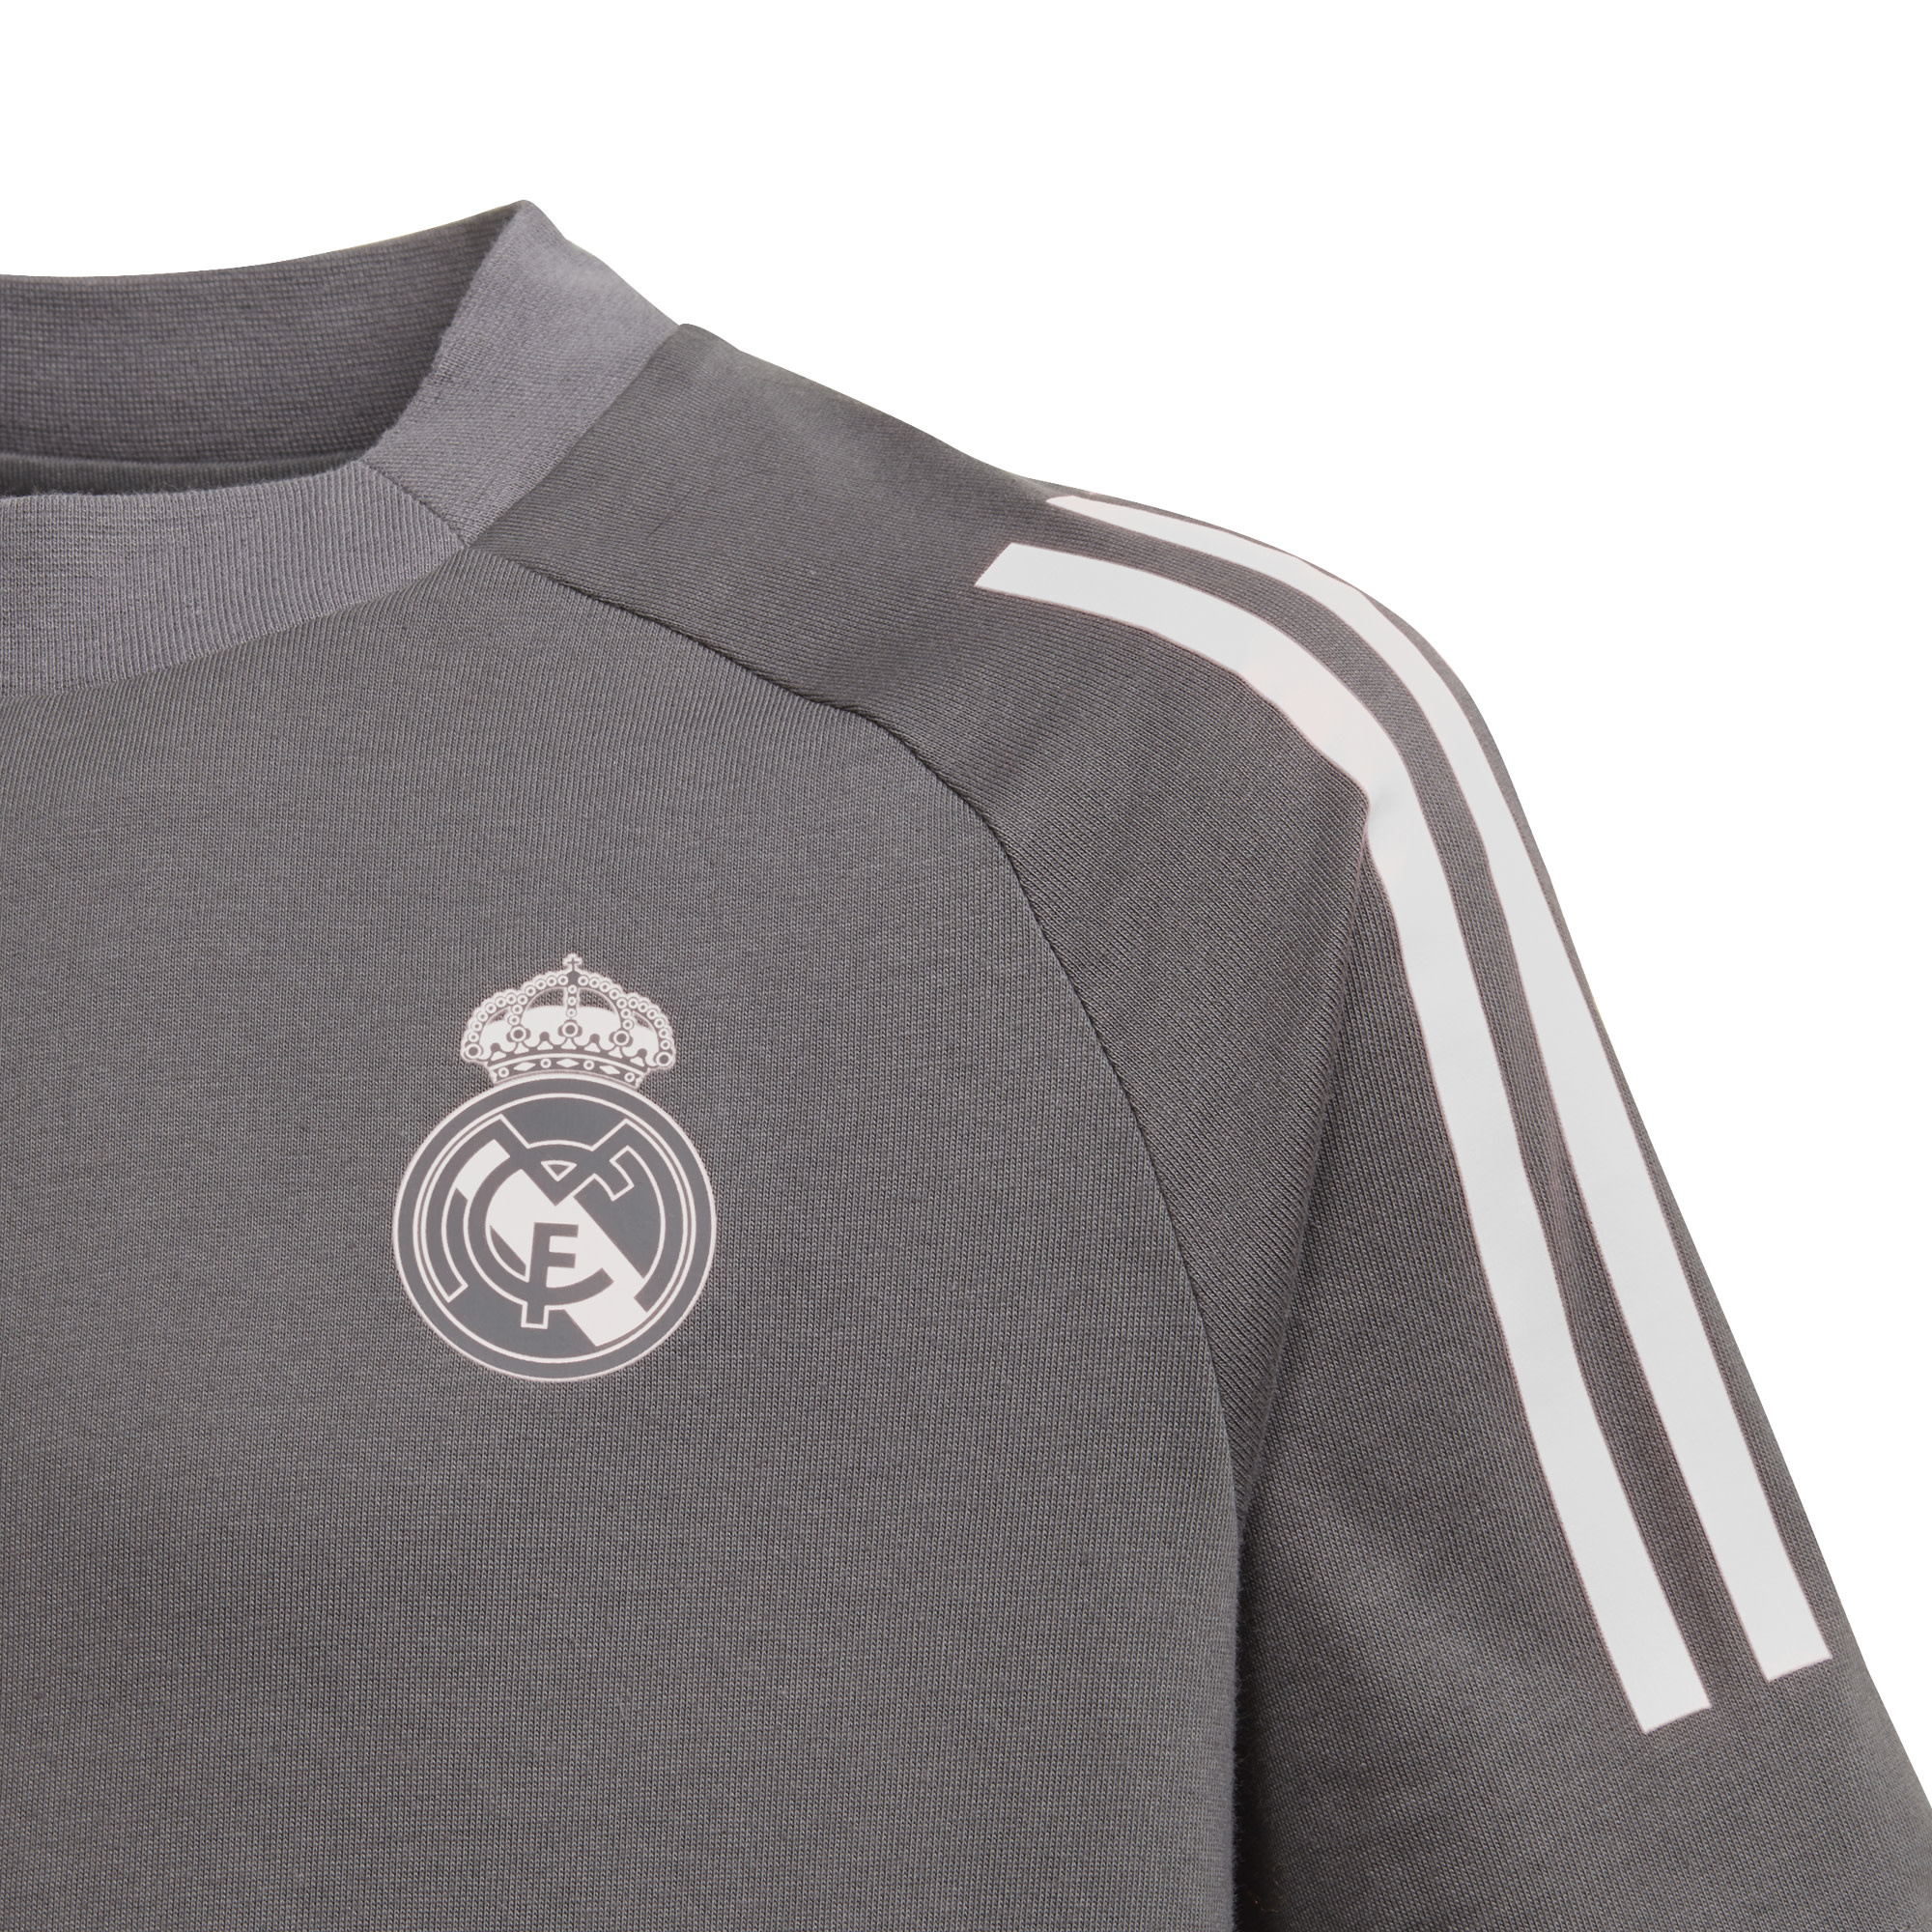 Adidas ADIDAS JR Real Madrid Cotton Jersey '20-'21